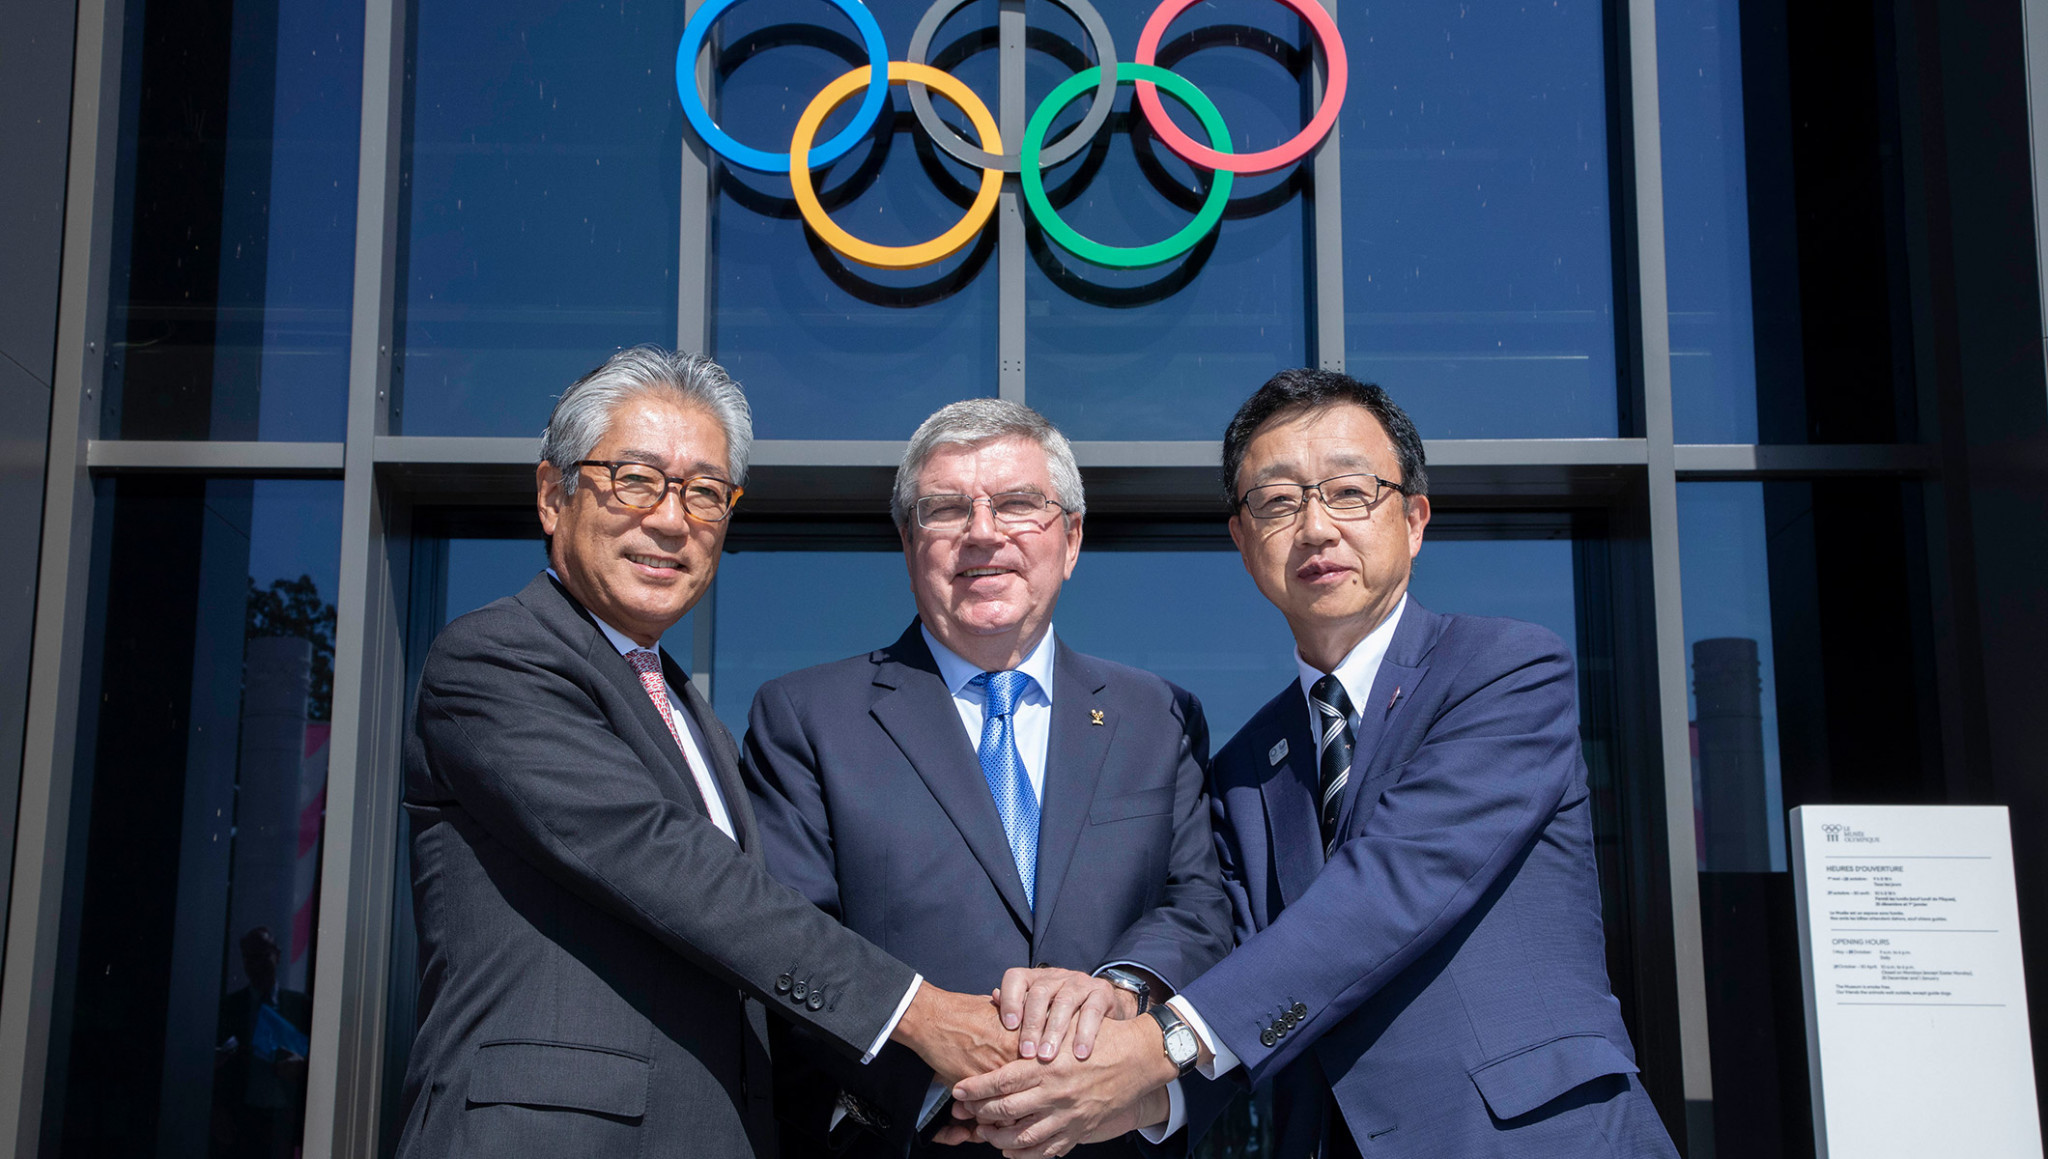 Sapporo withdraws from race for 2026 Winter Olympics and Paralympics to focus on 2030